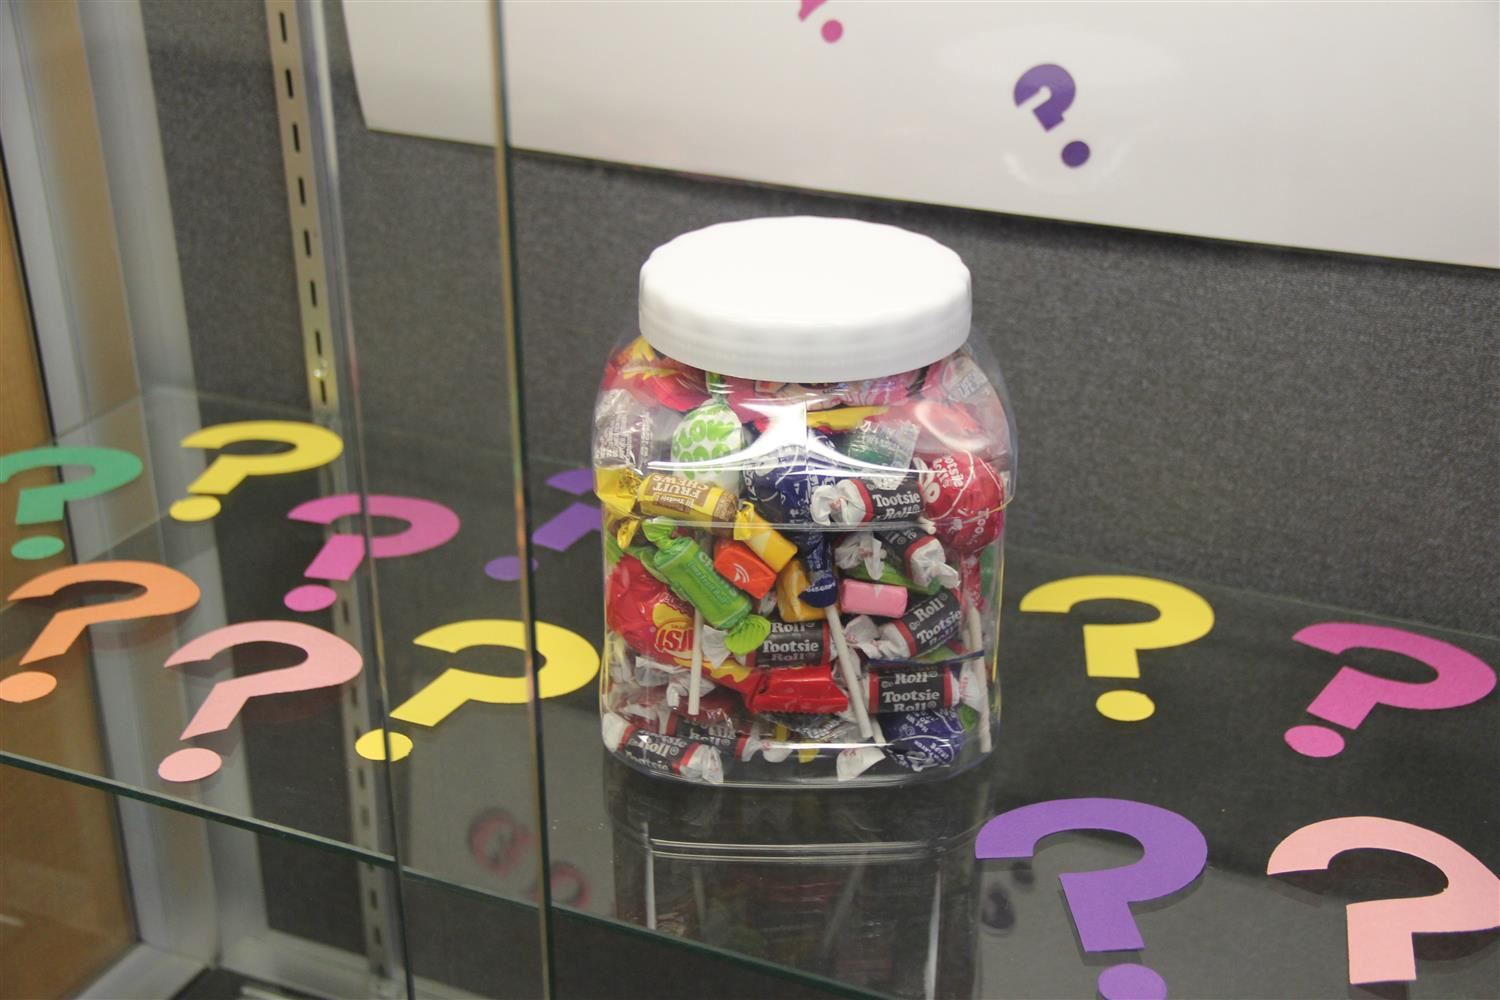 Example candy jar from Guess How Many Contest